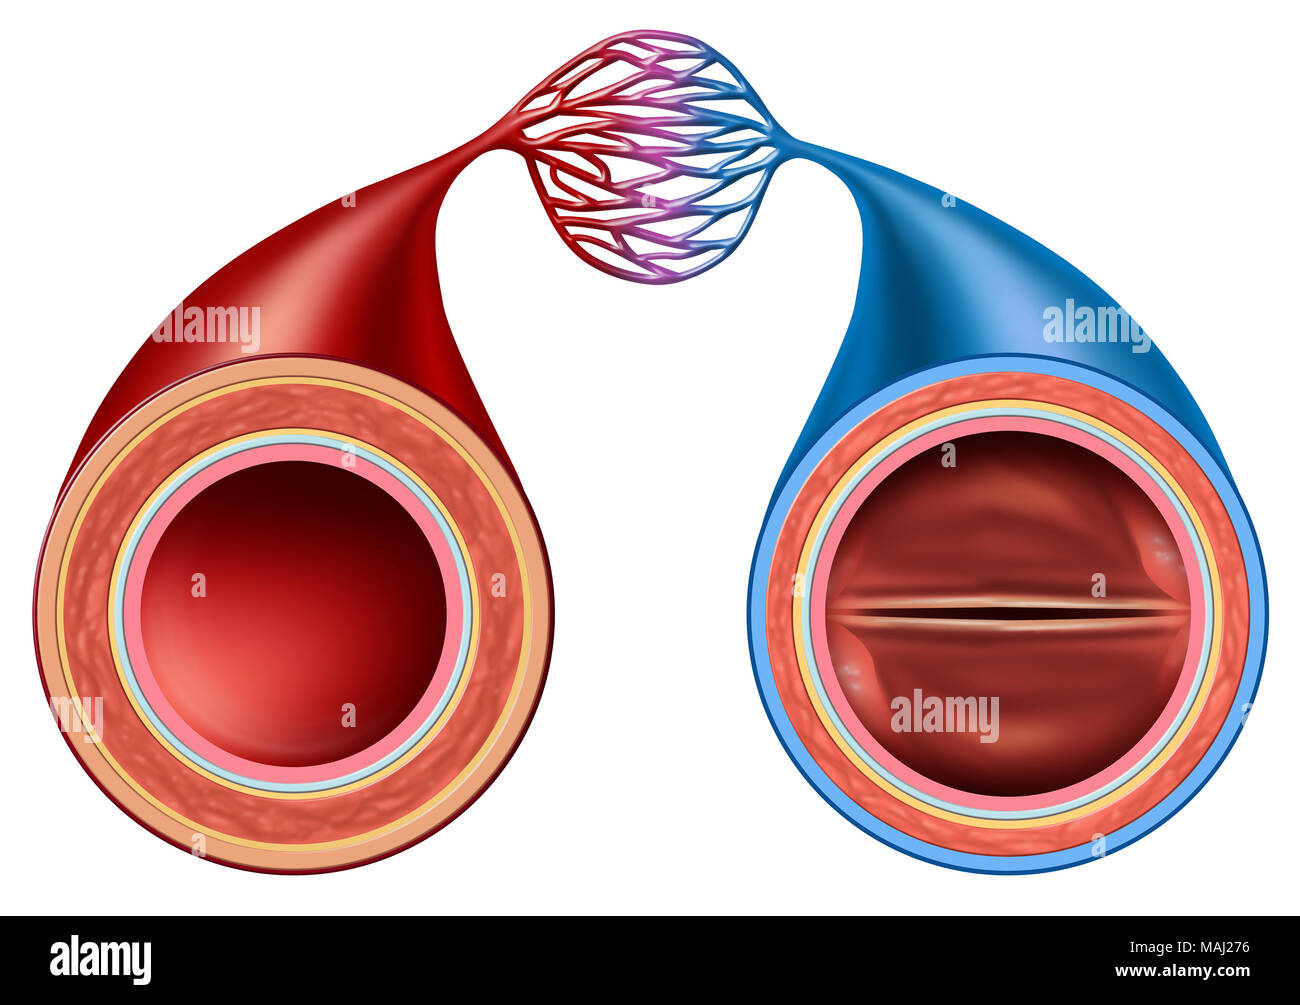 Artery And Vein Structure Comparison Concept As A Human Circulation